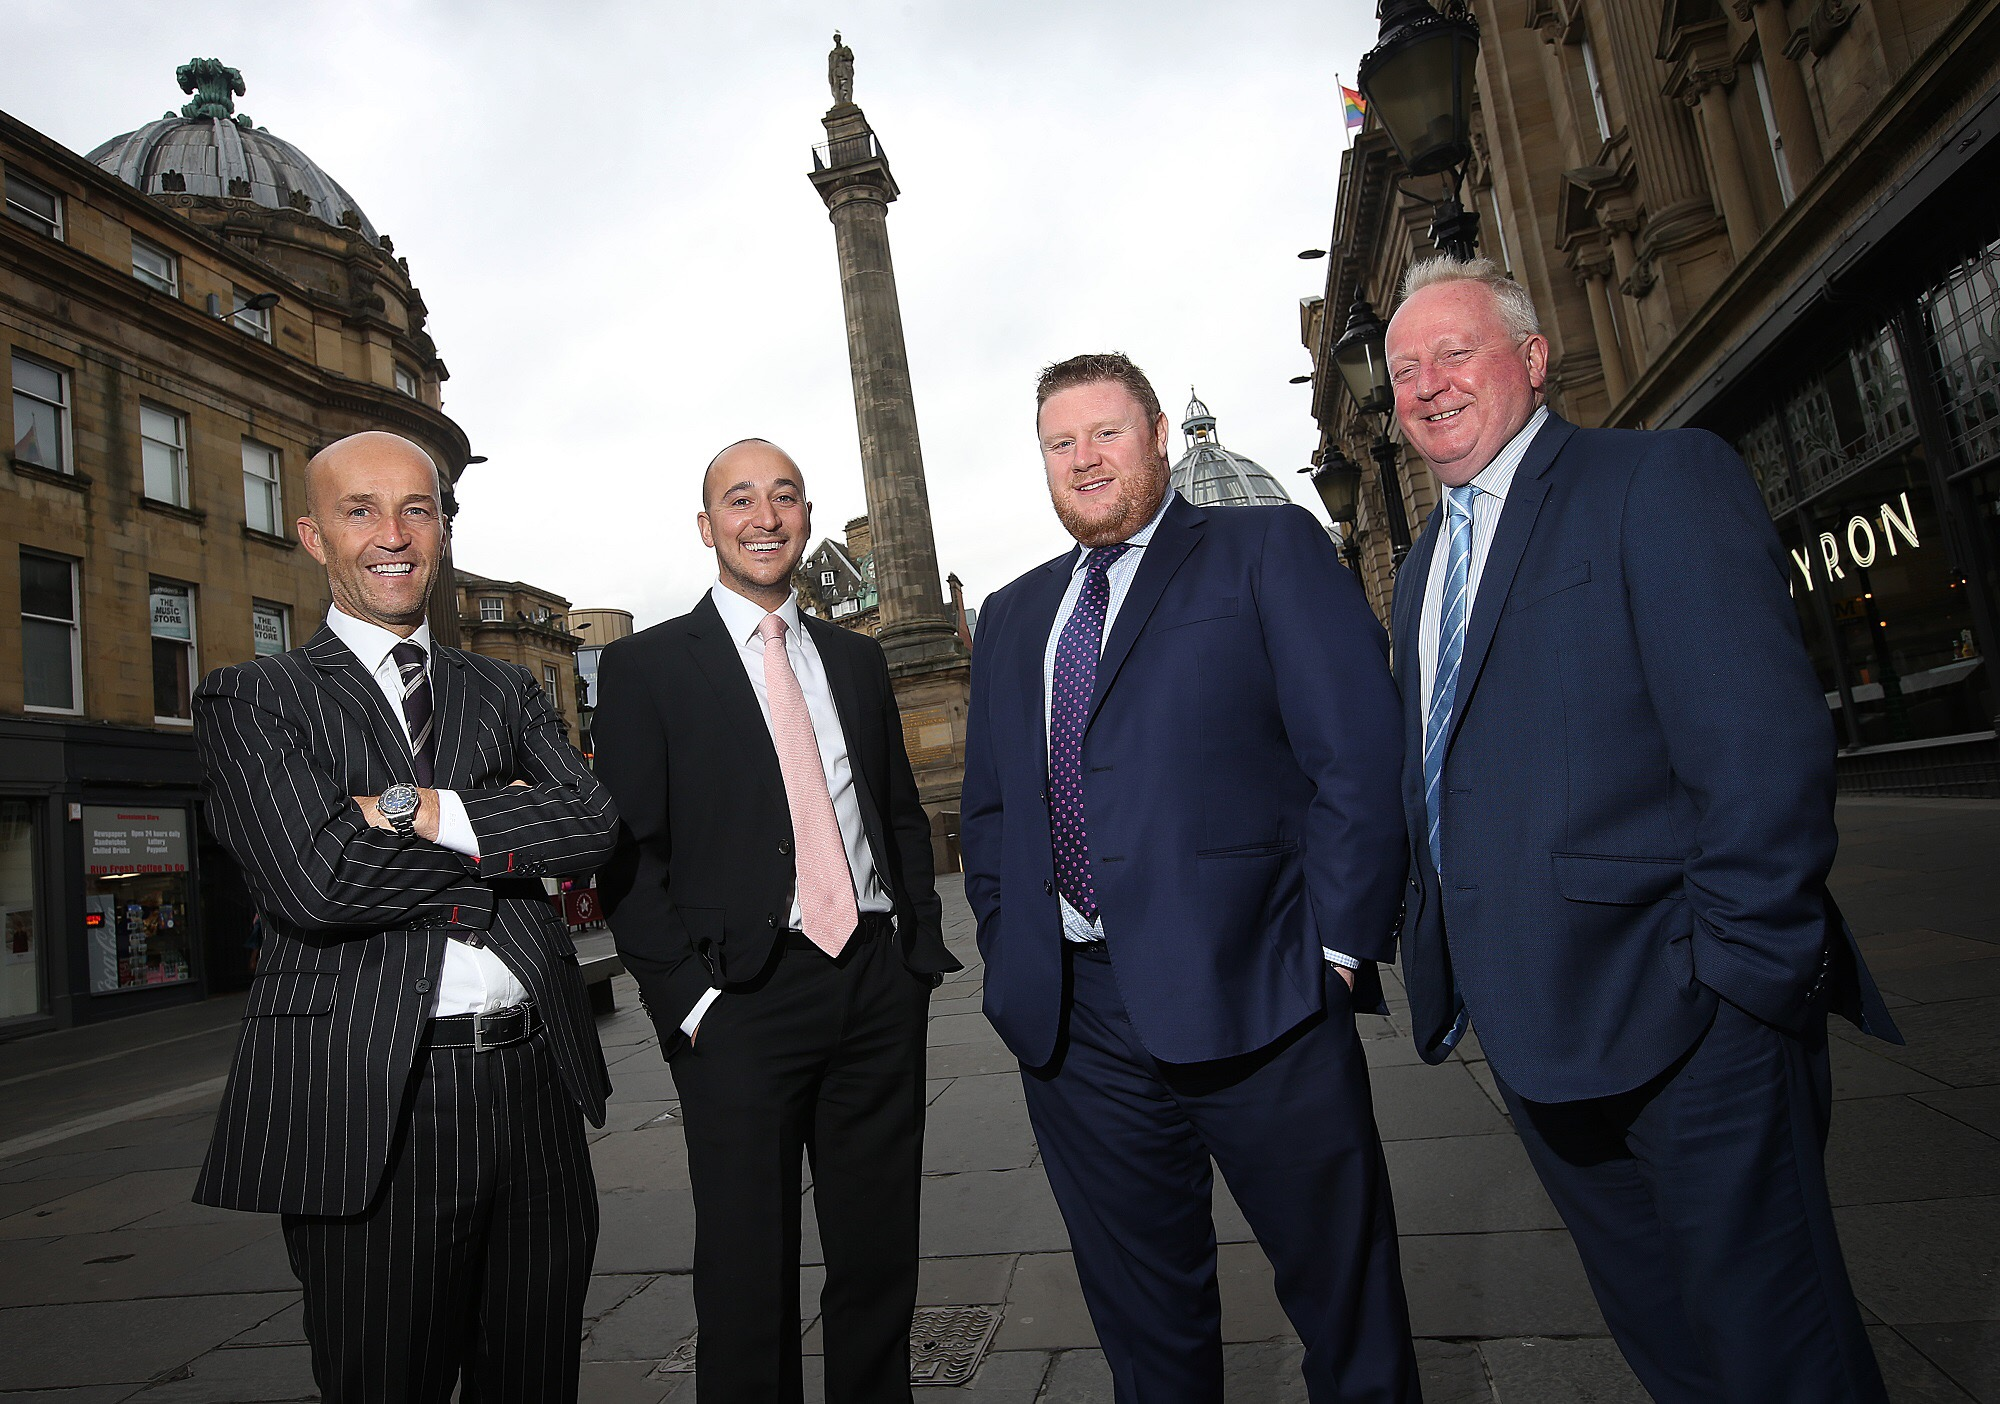 Property firm goes daft celebrating 30th anniversary